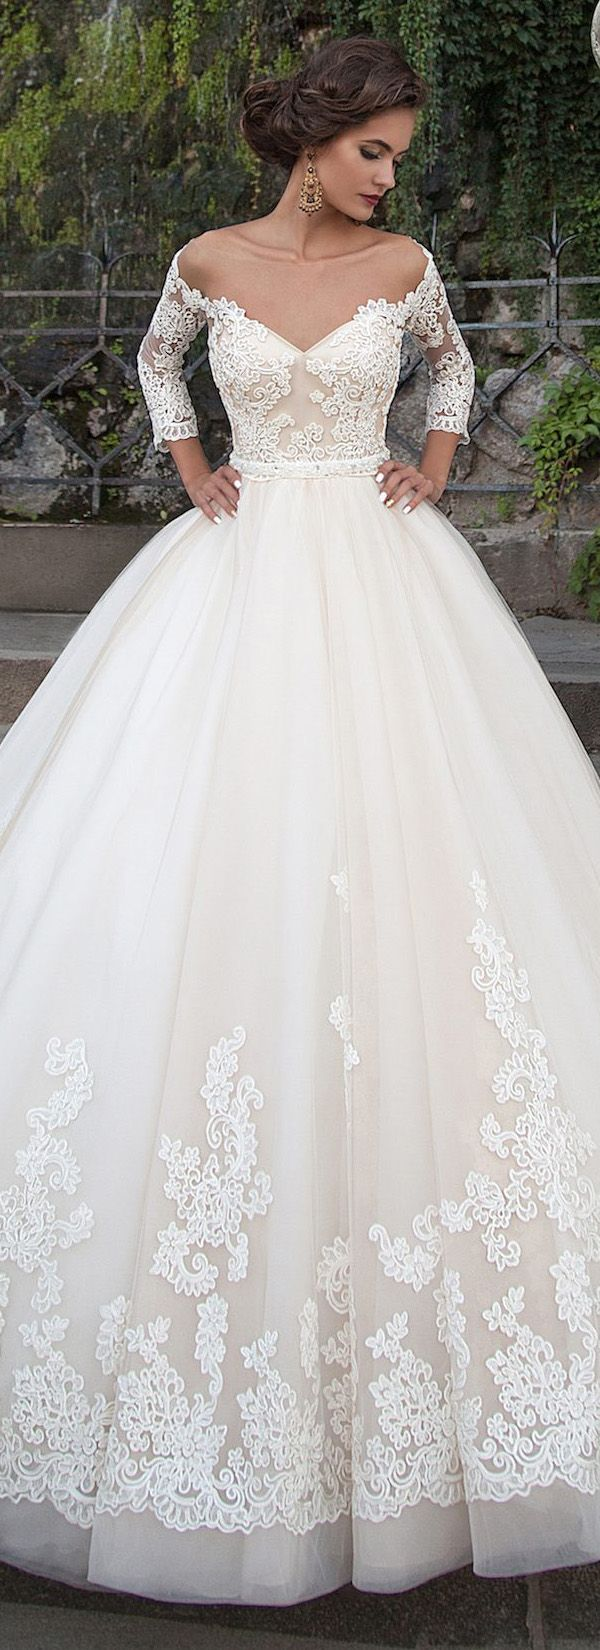 2017 a-line off shoulder wedding dresses